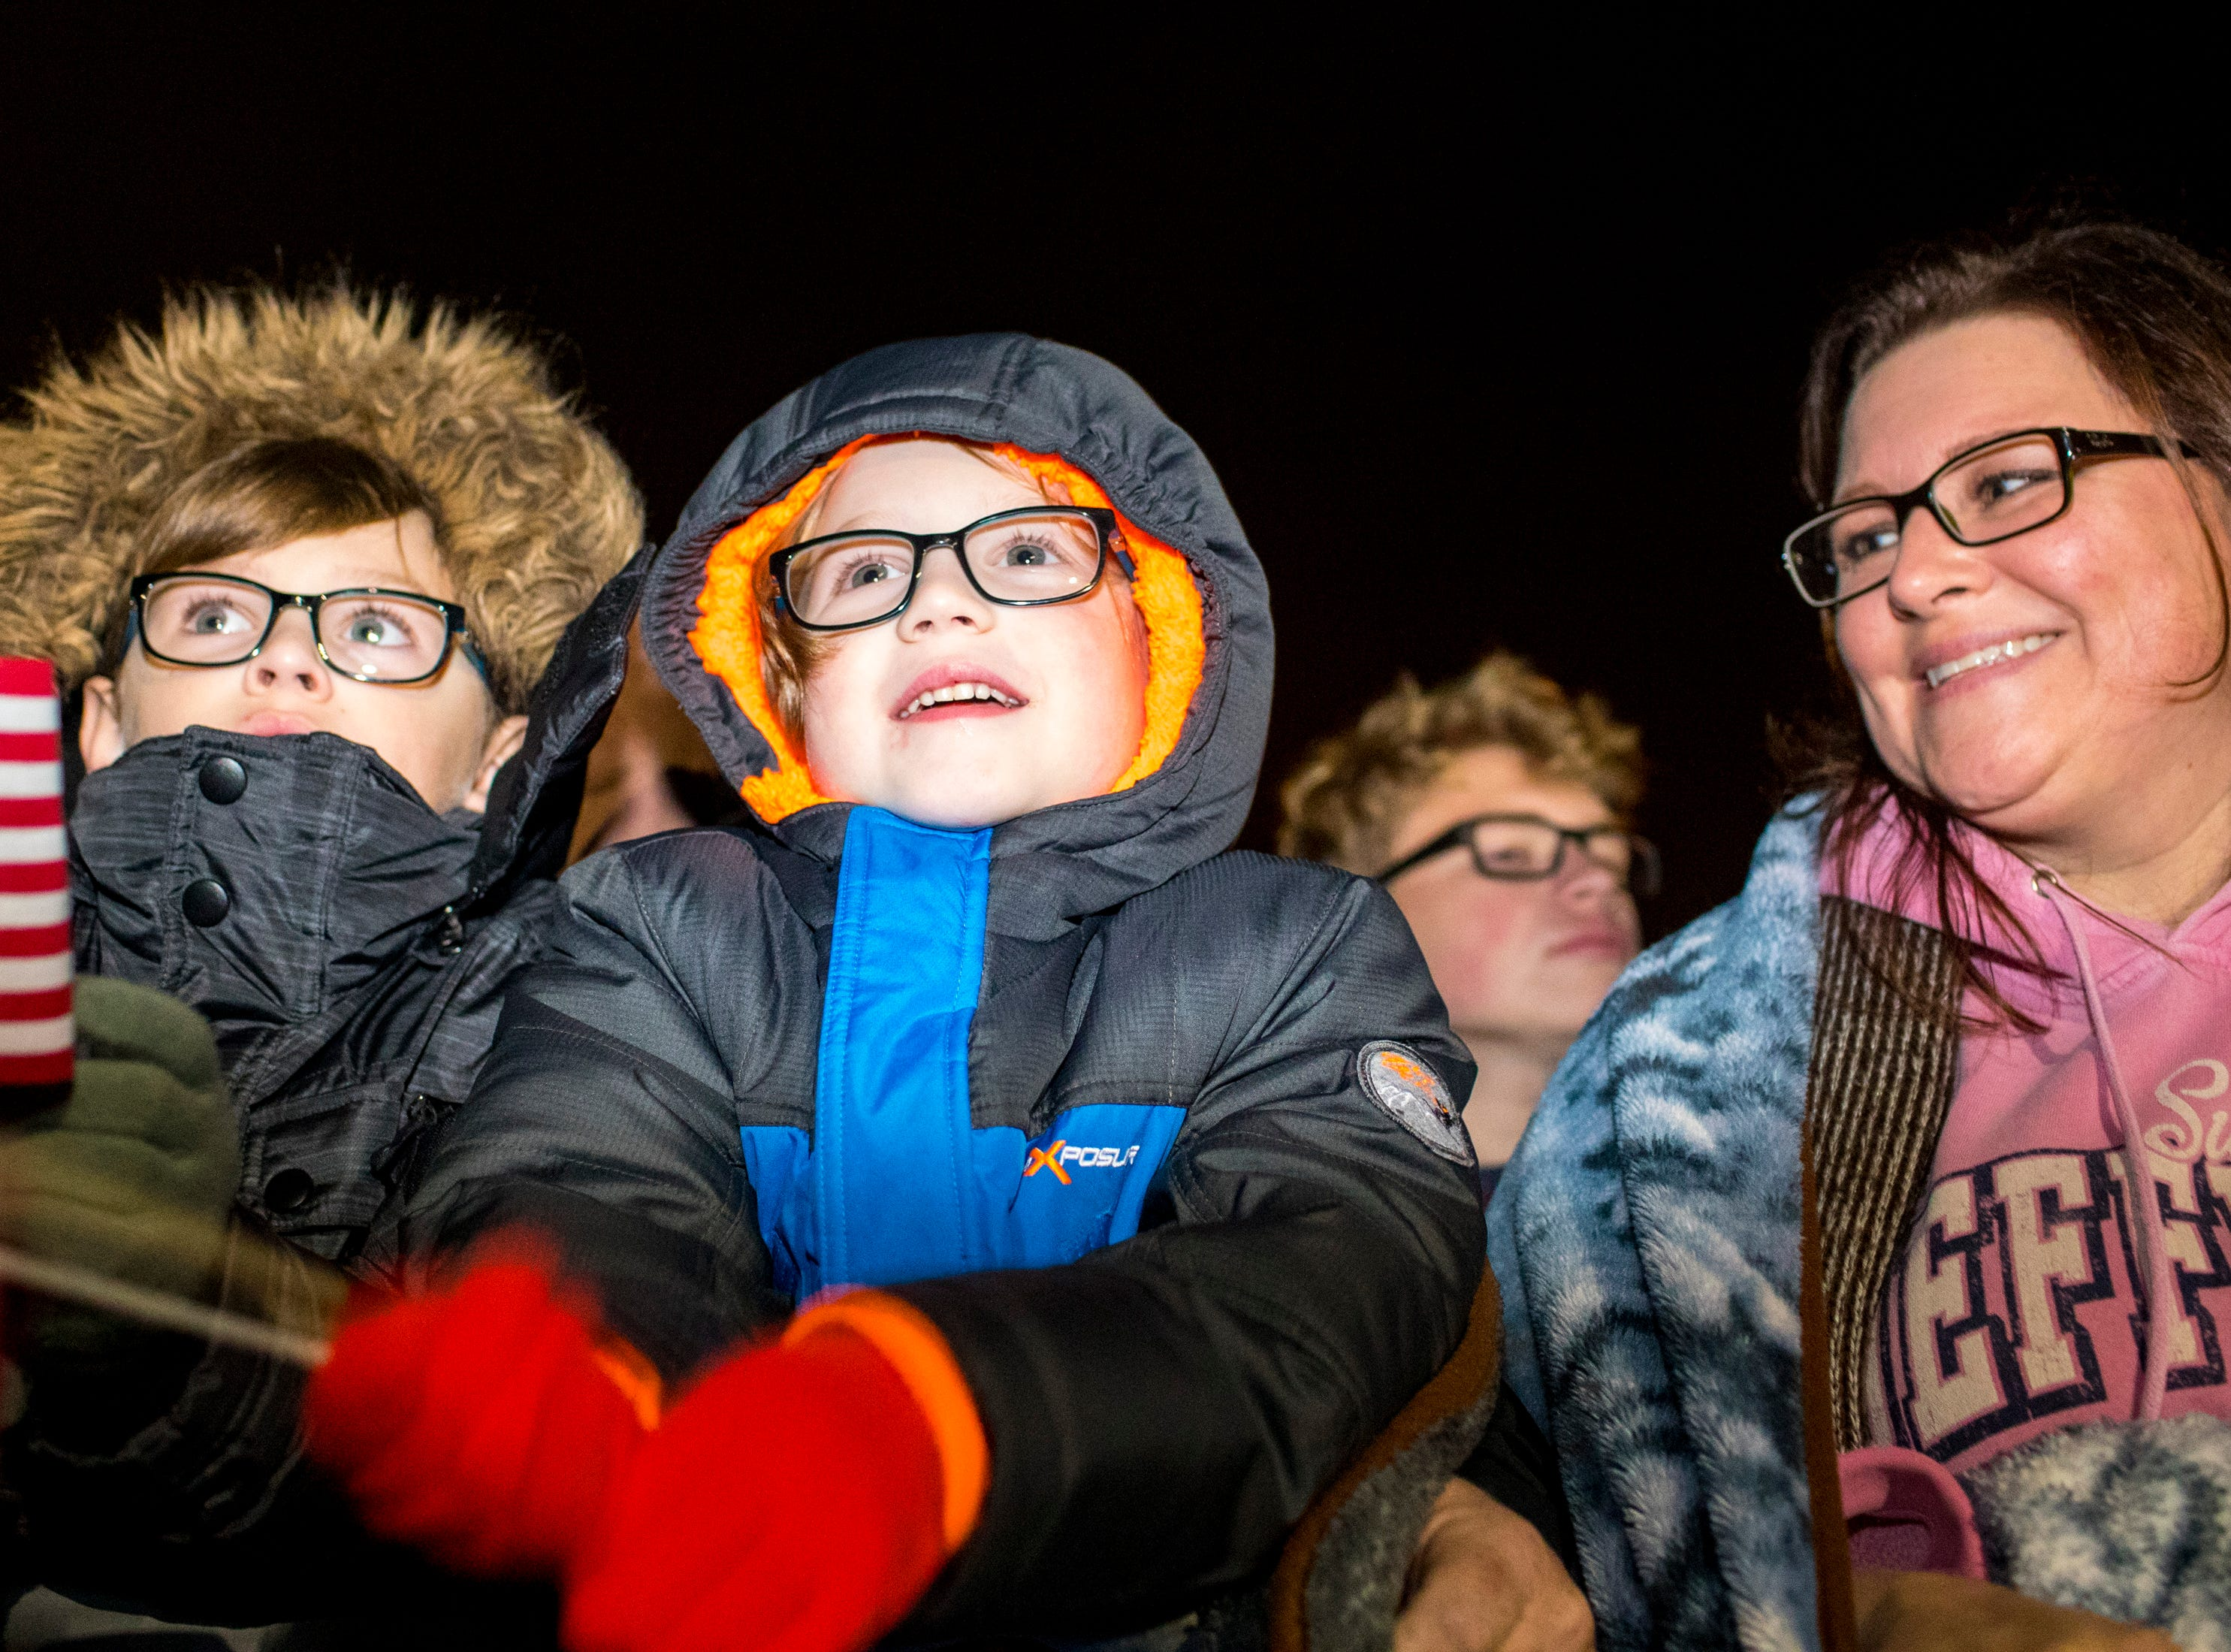 Hudsyn VanKirk, 6, prepares to welcome his uncle, Specialist Nick Green, during the welcome home ceremony for the 2nd Battalion, 44th Air Defense Artillery Regiment and 101st Airborne Division at Fort Campbell in the early hours of Monday, Nov. 19, 2018. The soldiers were returning from a 9-month deployment in Afghanistan.